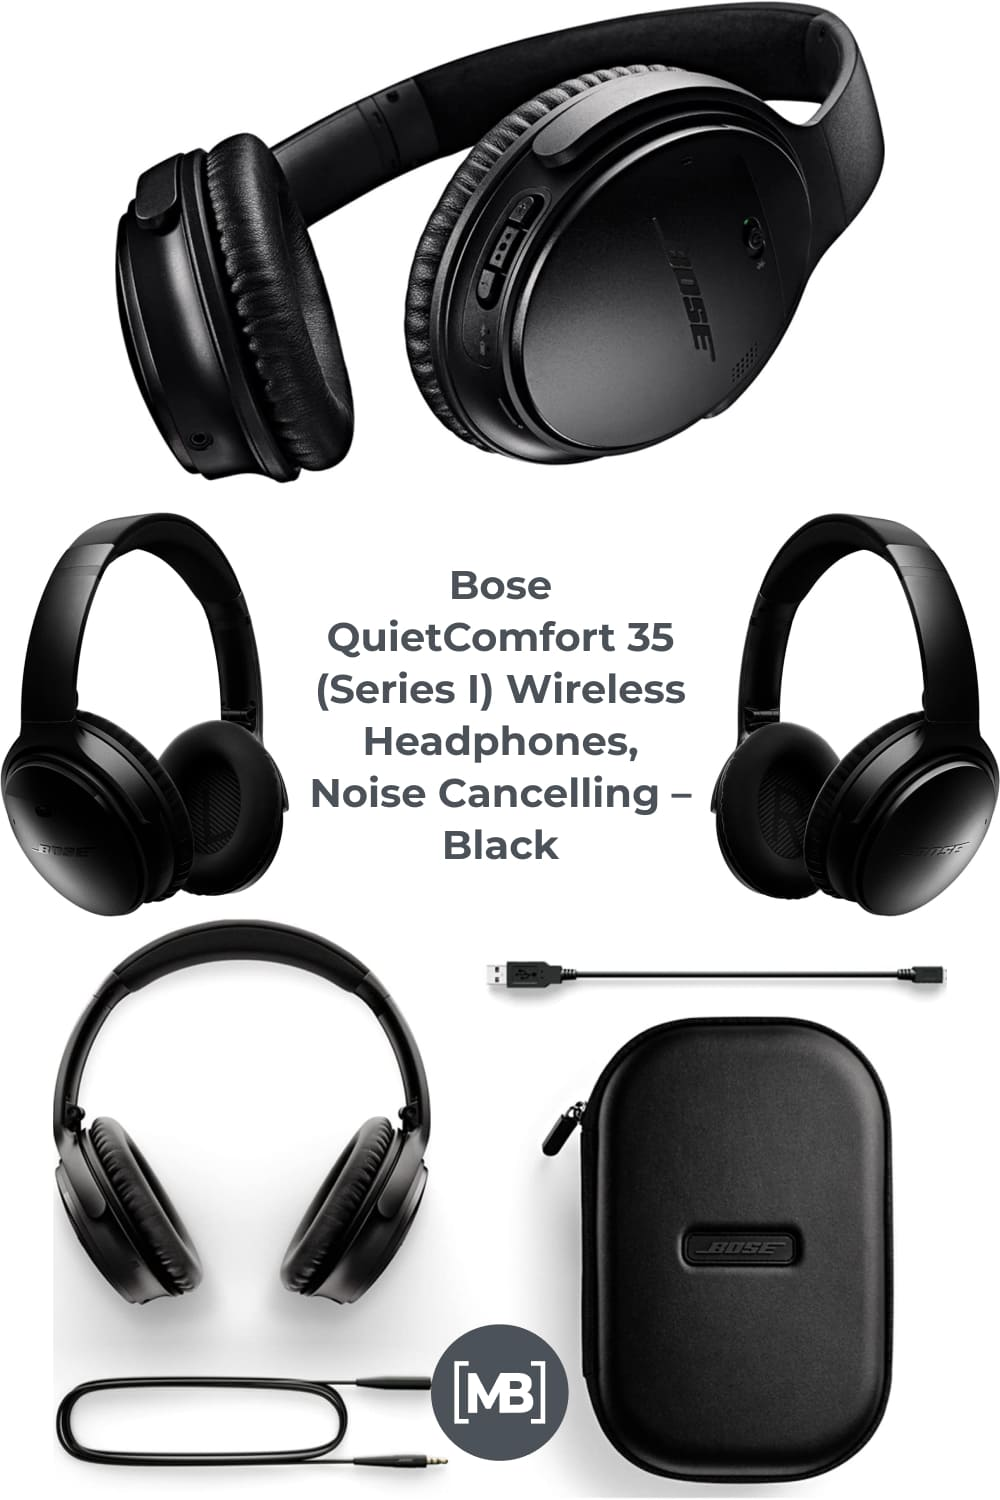 Bose QuietComfort 35 (Series I) Wireless Headphones provide balanced audio performance no matter how noisy your commute is, and clear calls even on a bustling, windy street.